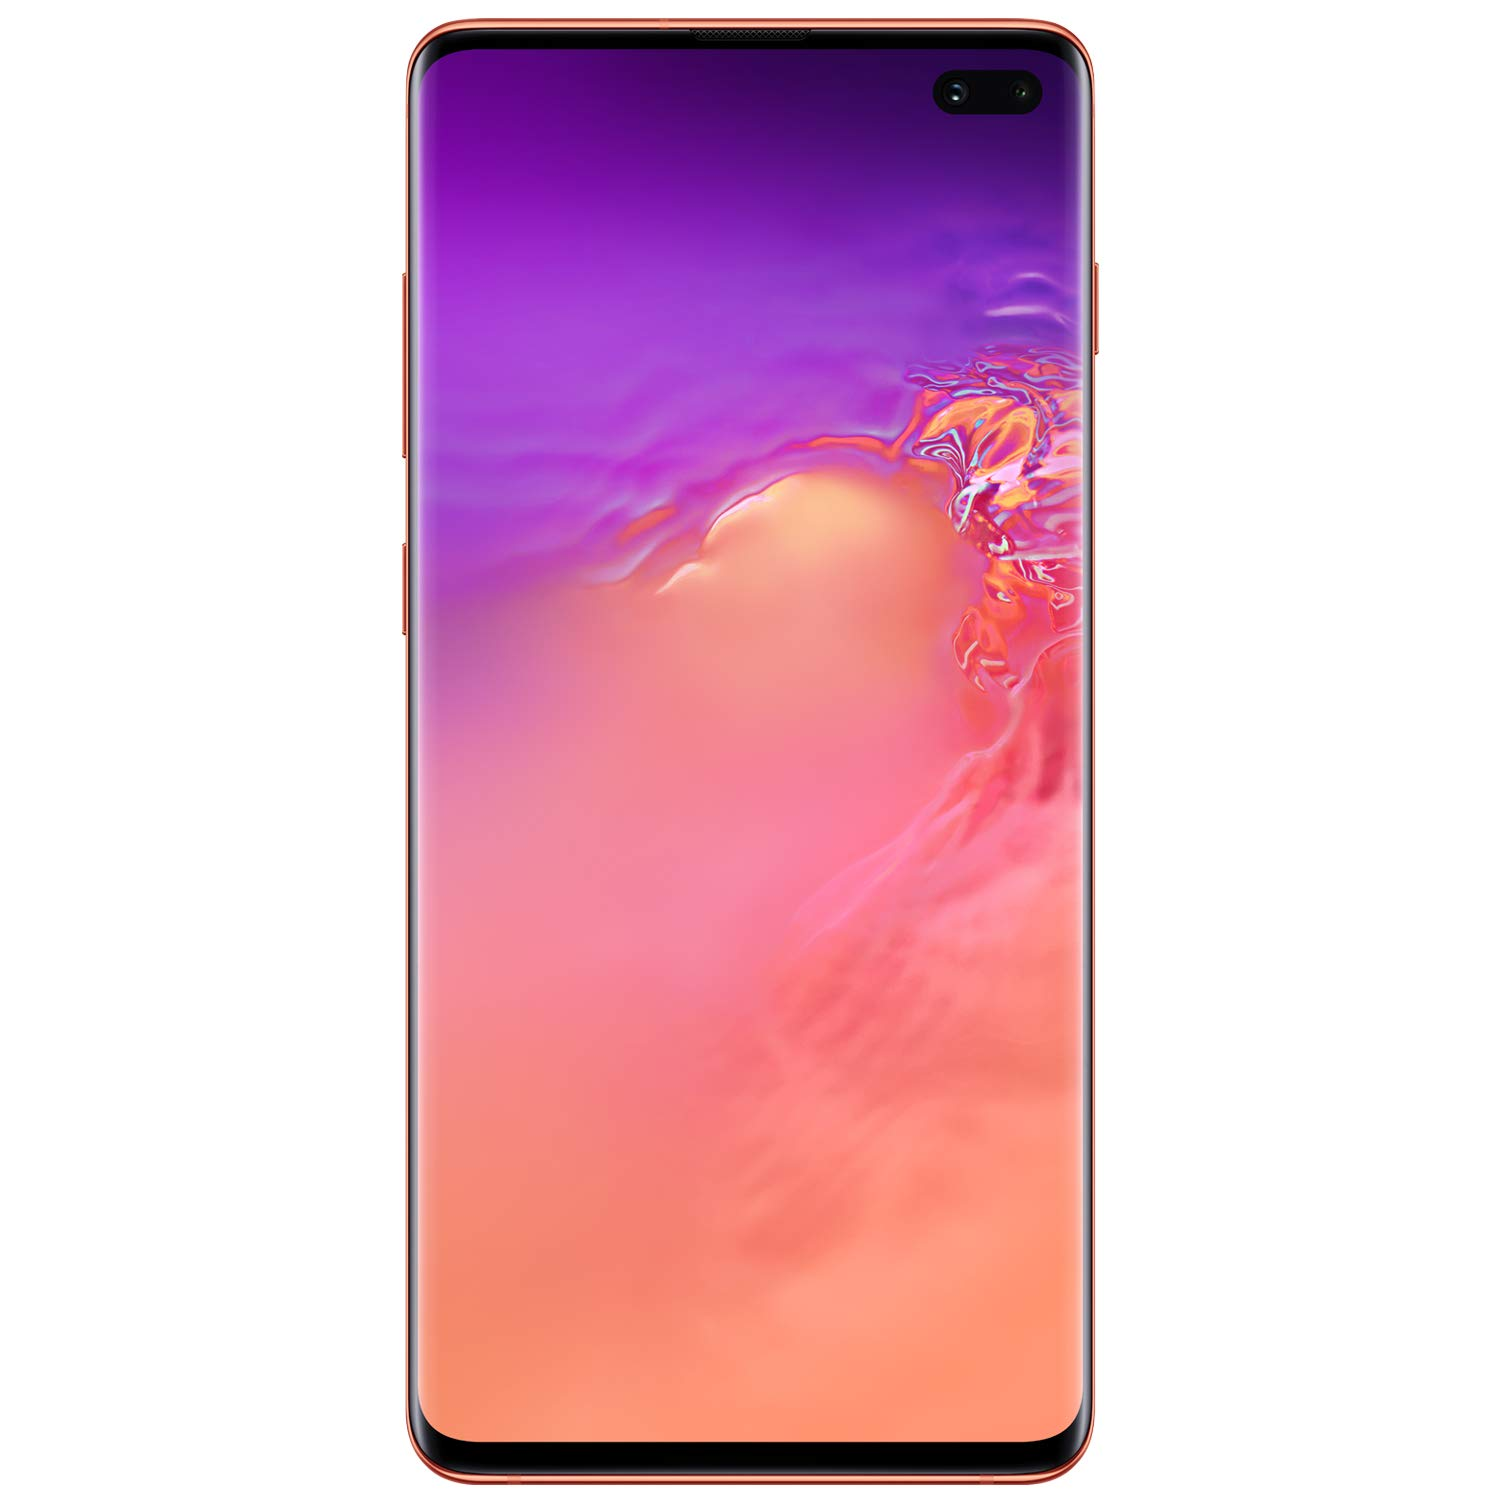 Samsung Galaxy S10+Factory Unlocked Android Cell Phone | US Version | 128GB of Storage | Fingerprint ID and Facial Recognition | Long-Lasting Battery | Flamingo Pink